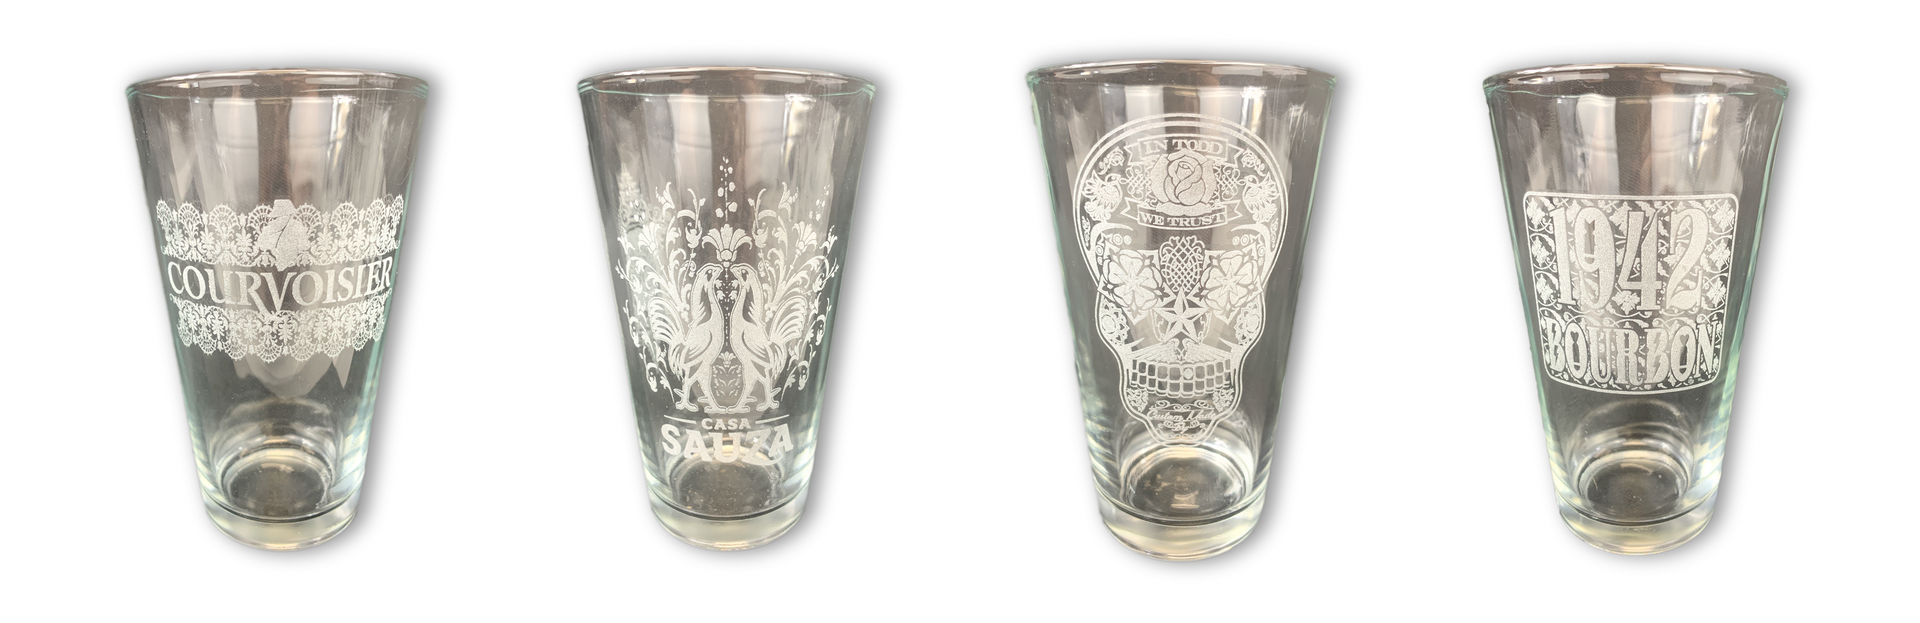 LASER ETCHED BRANDED GLASSWARE